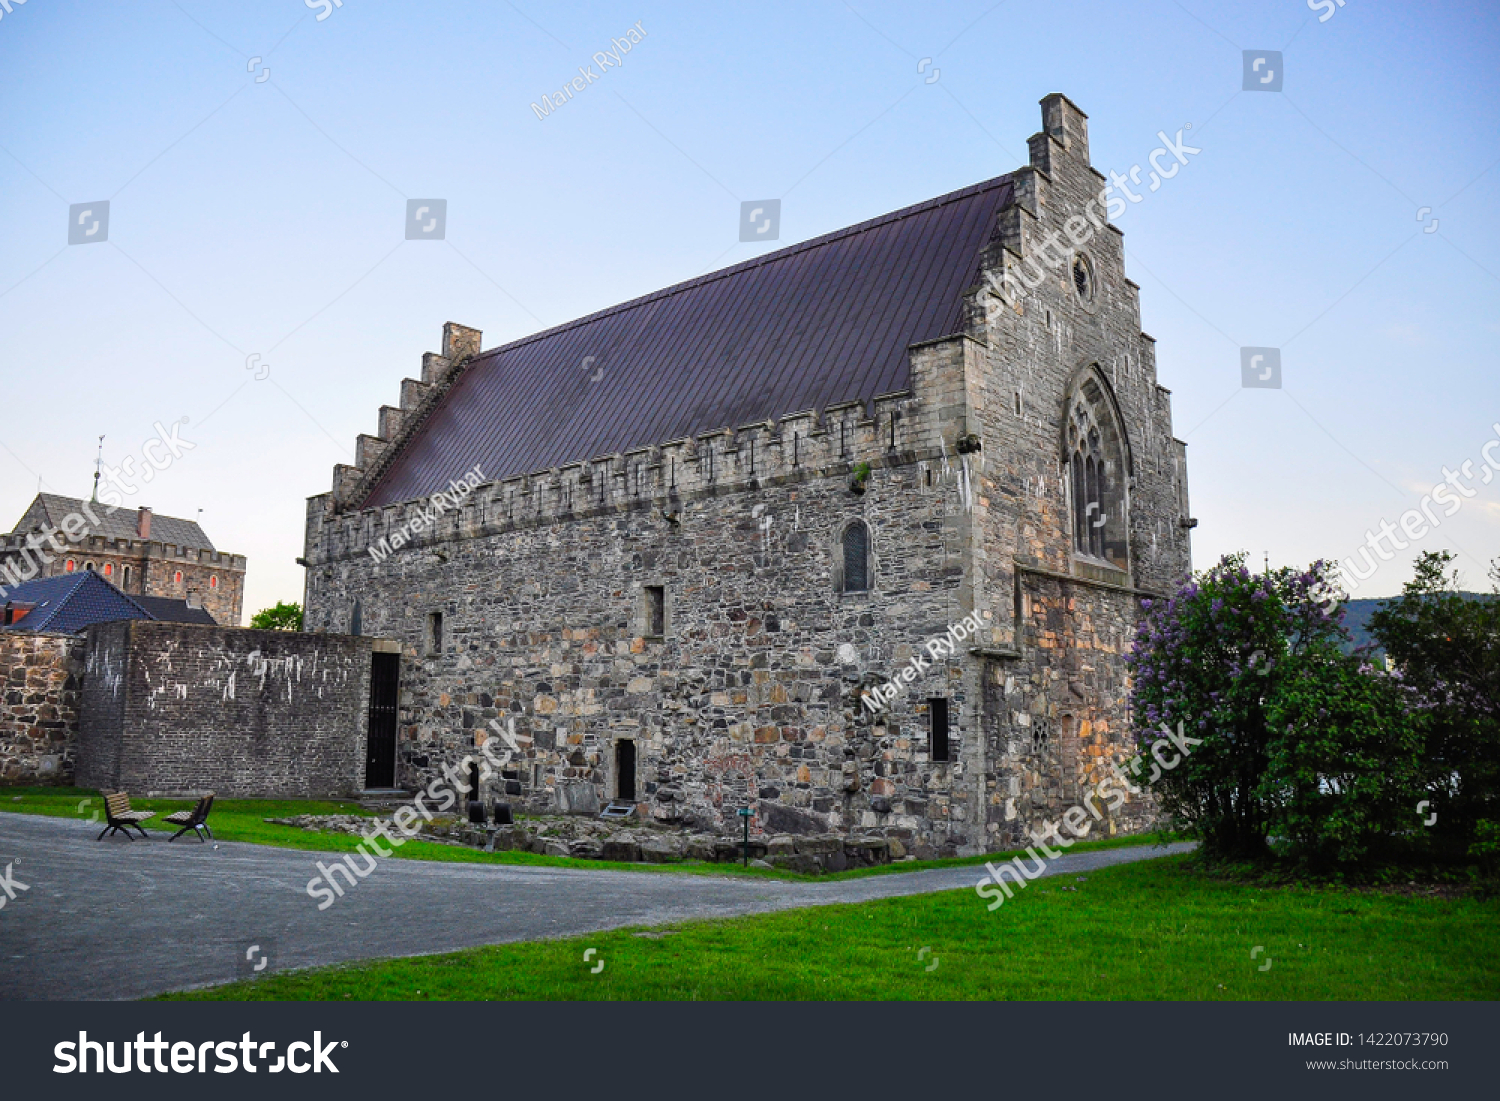 Haakon's Hall, a medieval stone hall located inside the fortress. Bergenhus fortress  is a fortress located in Bergen, Norway. Summer tourist place.